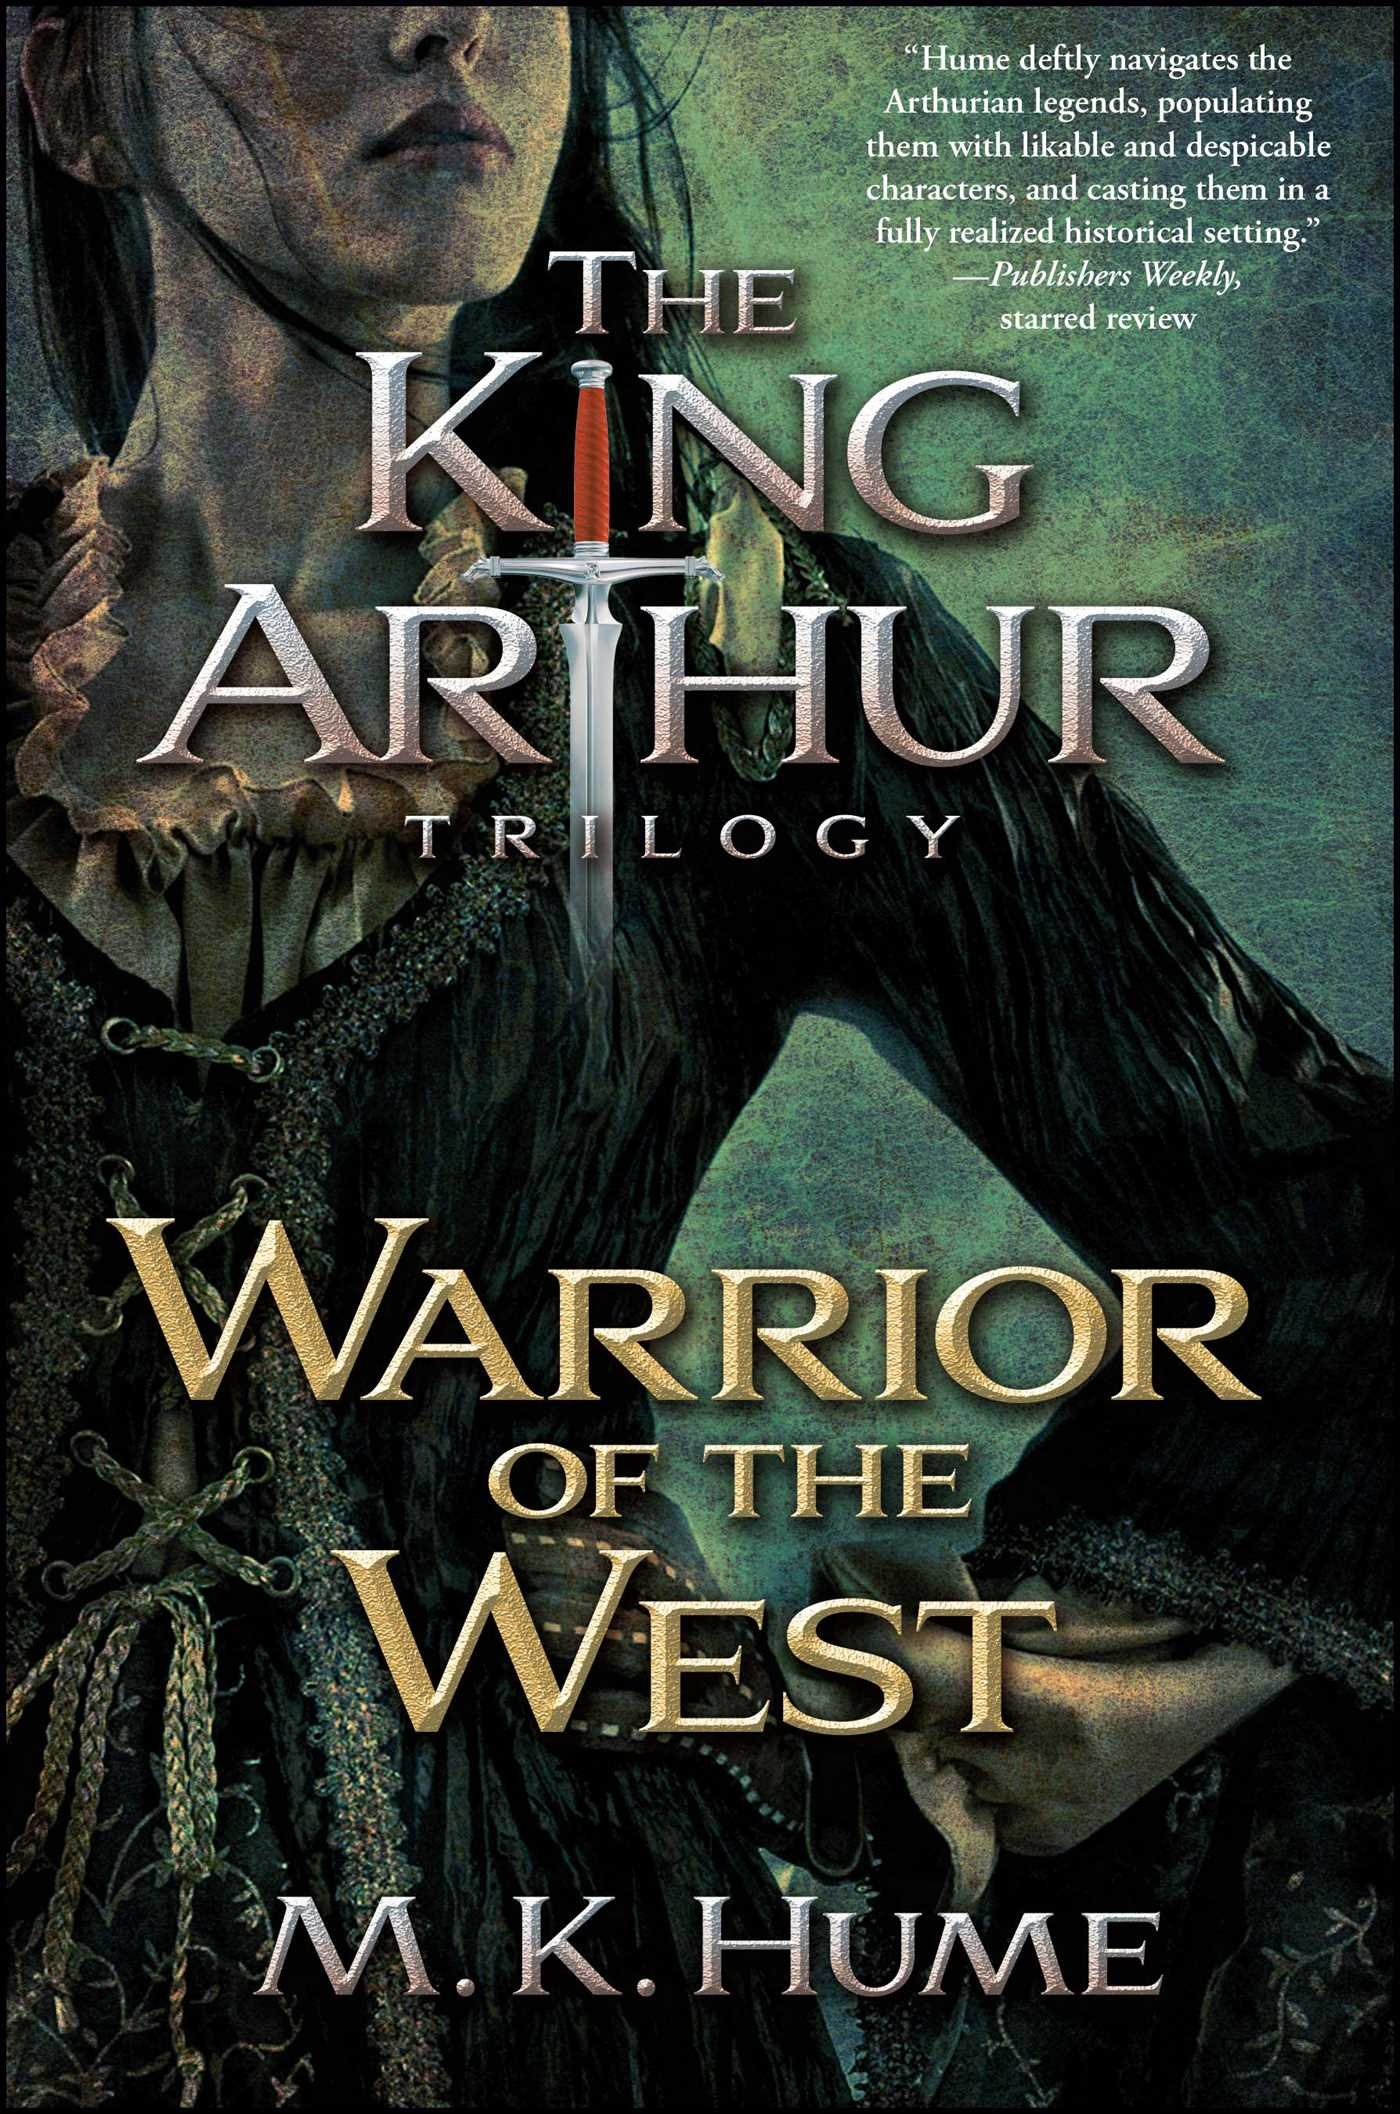 Download The King Arthur Trilogy Book Two: Warrior of the West pdf epub